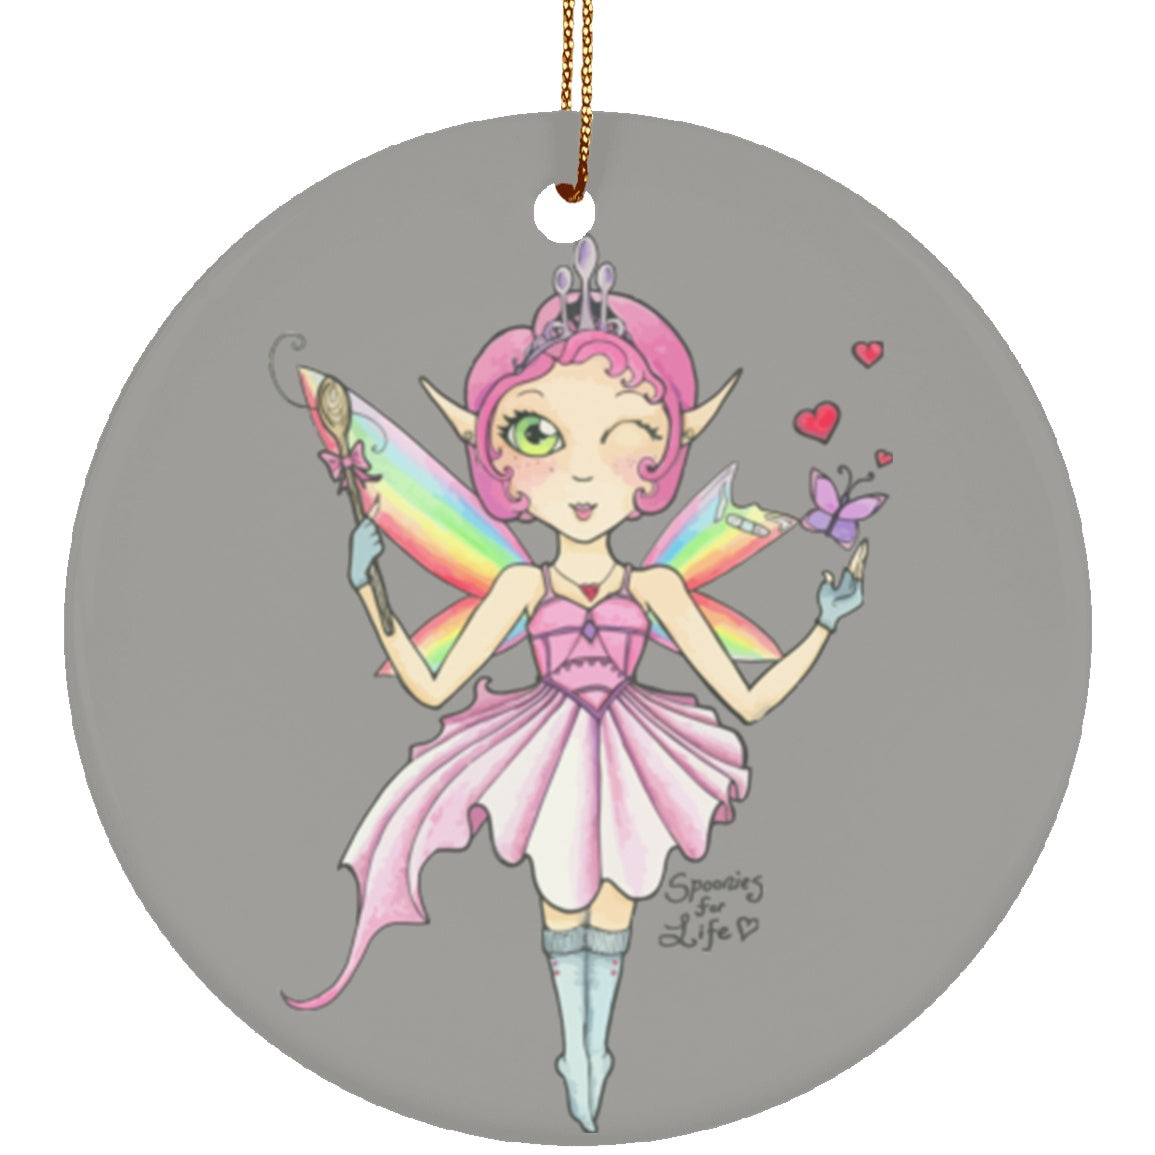 Spoon Fairy Circle Ornament - The Unchargeables